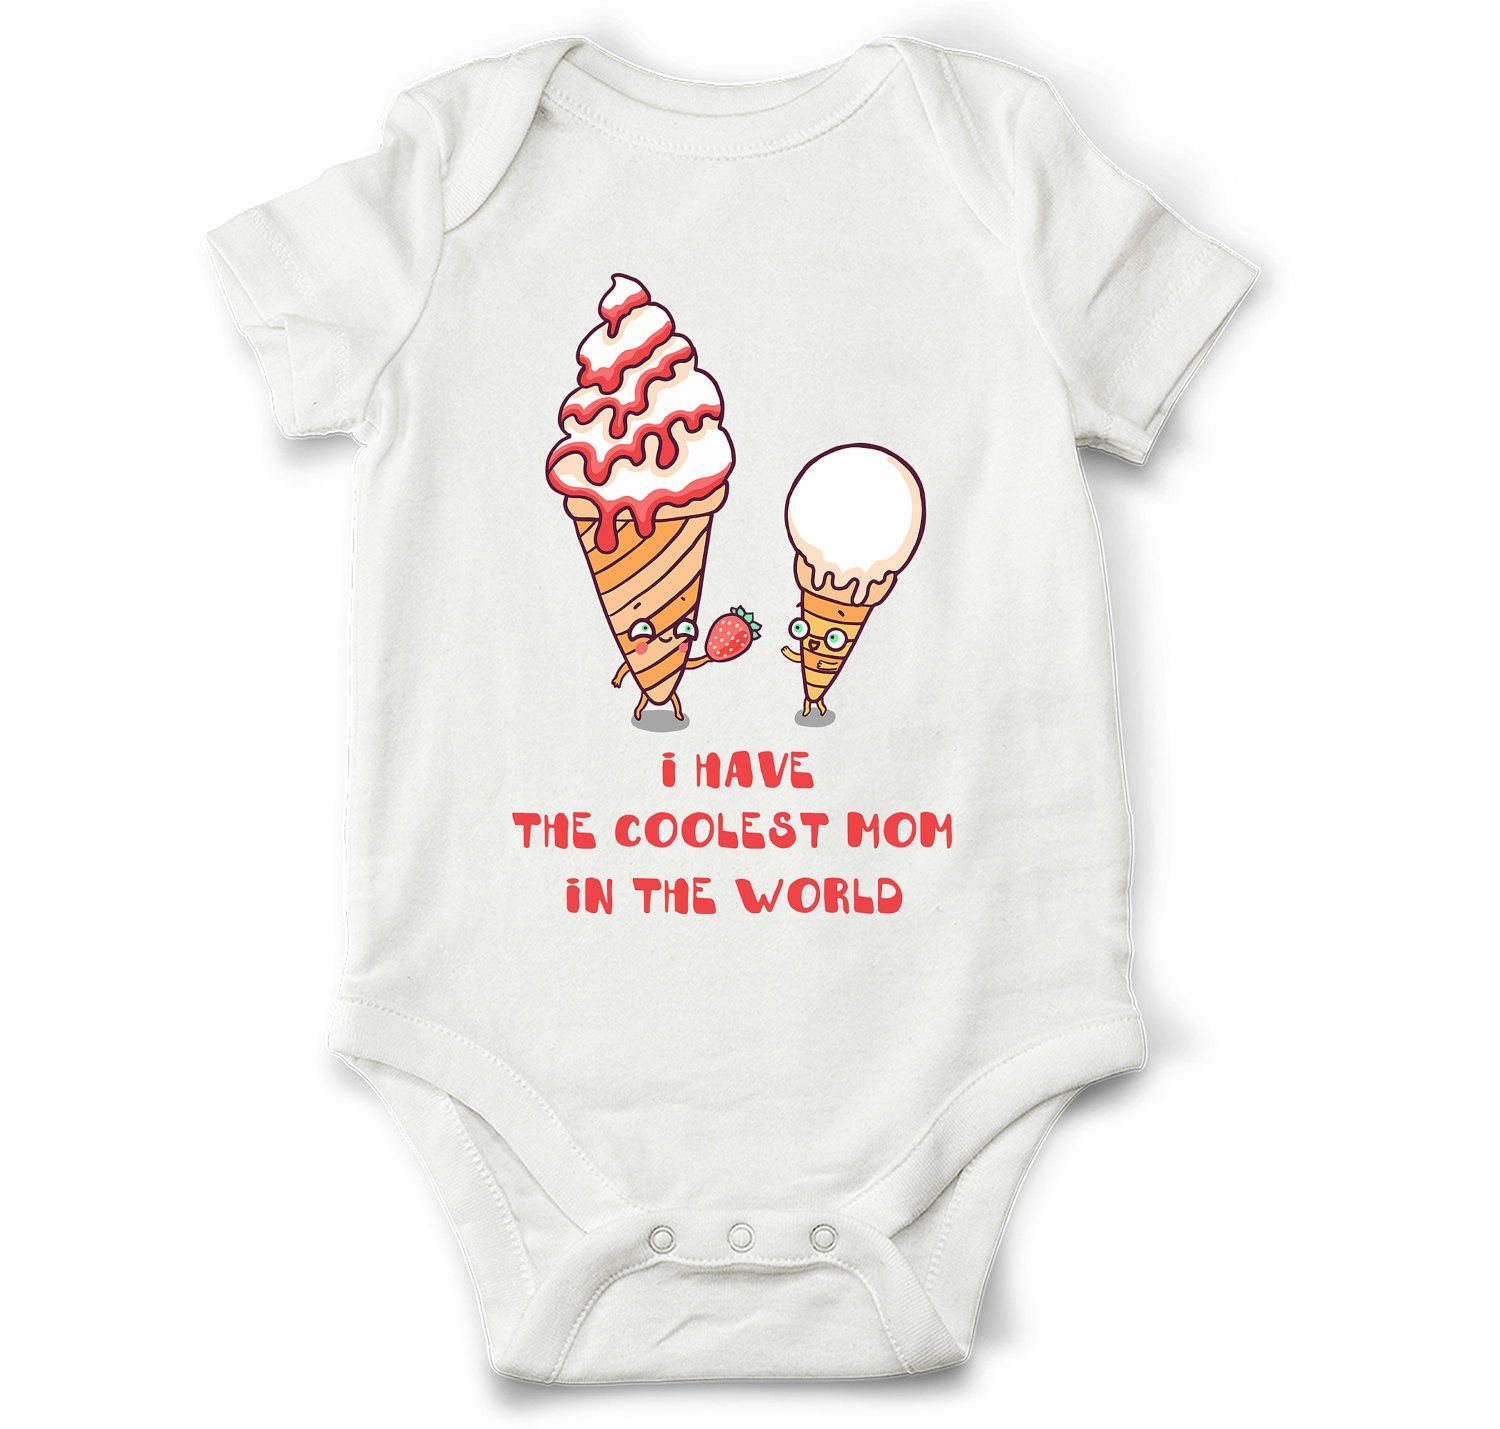 8bba312fe Unique the coolest mom onesie, ice-cream baby bodysuit, cute baby shower  gift, baby girl, baby boy by OldCauldronGifts on Etsy